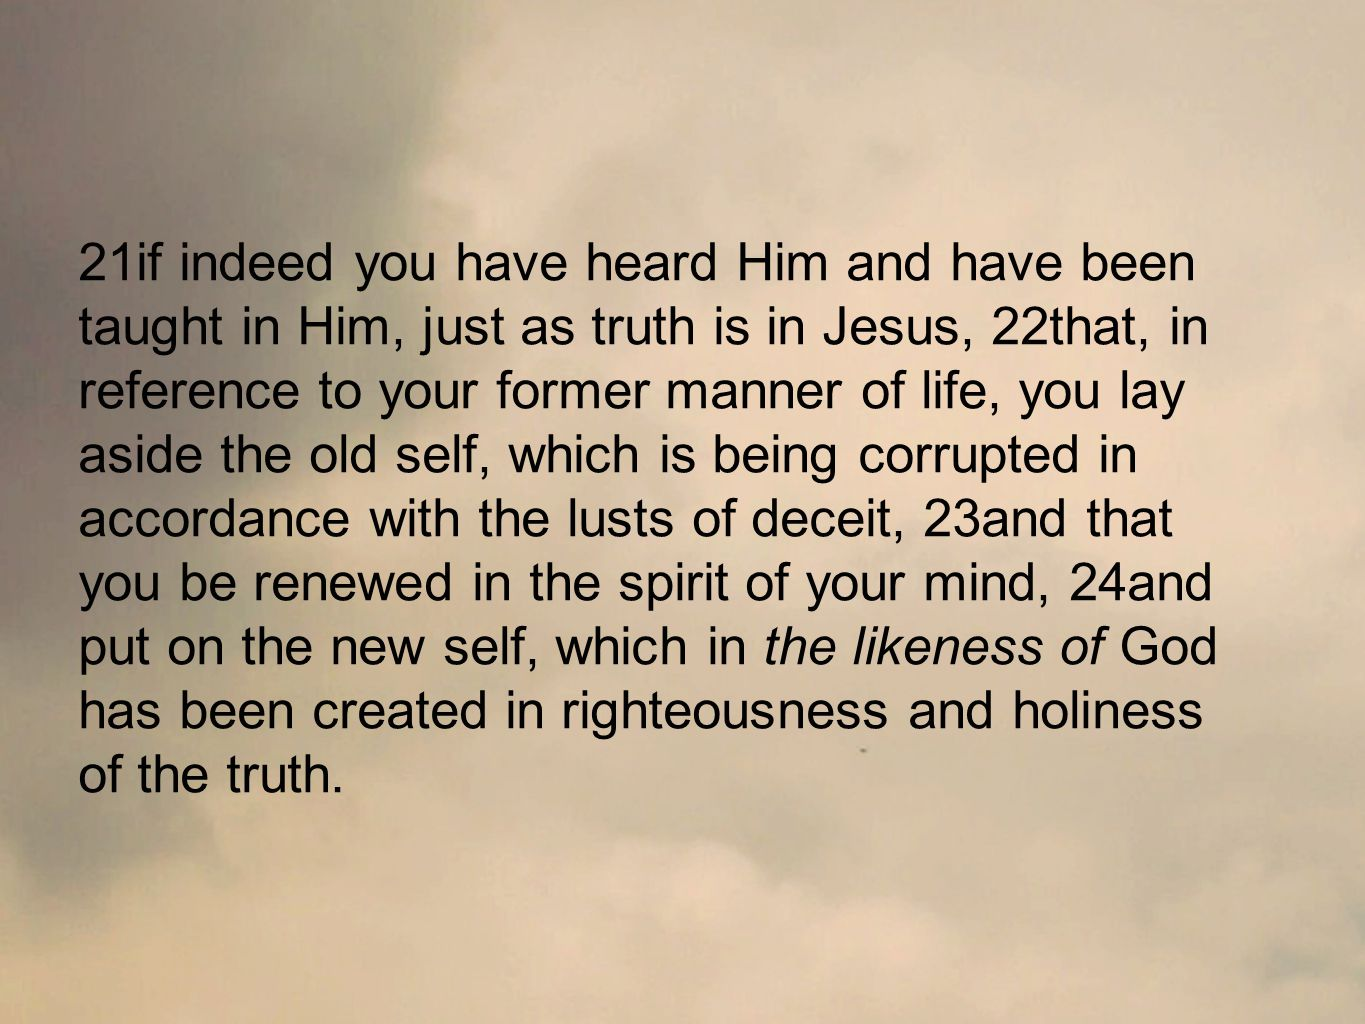 21if indeed you have heard Him and have been taught in Him, just as truth is in Jesus, 22that, in reference to your former manner of life, you lay aside the old self, which is being corrupted in accordance with the lusts of deceit, 23and that you be renewed in the spirit of your mind, 24and put on the new self, which in the likeness of God has been created in righteousness and holiness of the truth.